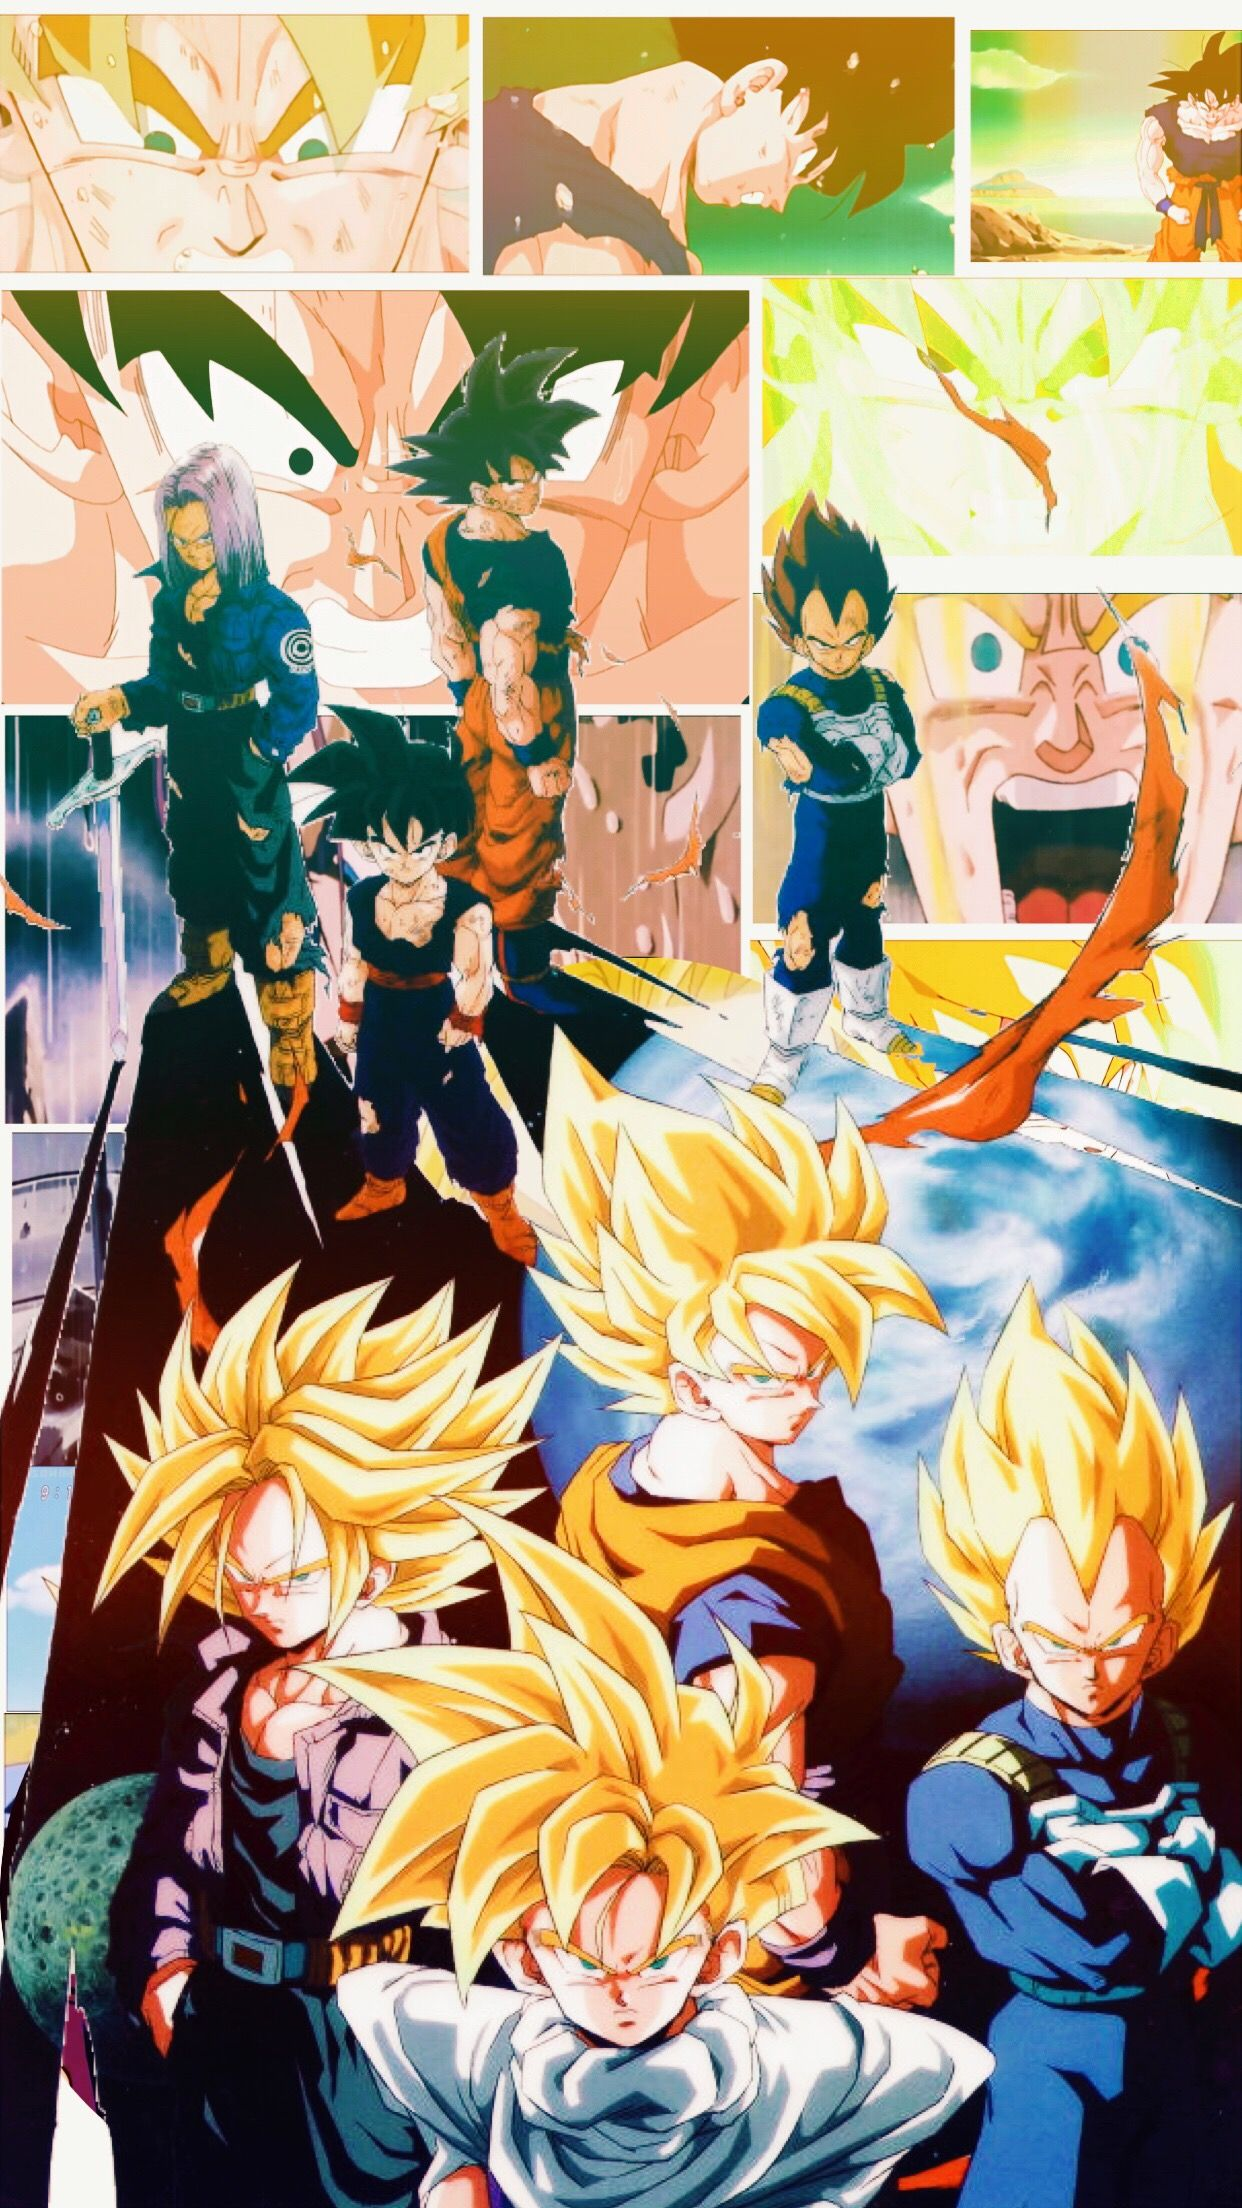 Pin By Mance Broome Ii On Dragon Ball Collection Anime Dragon Ball Super Anime Dragon Ball Dragon Ball Art